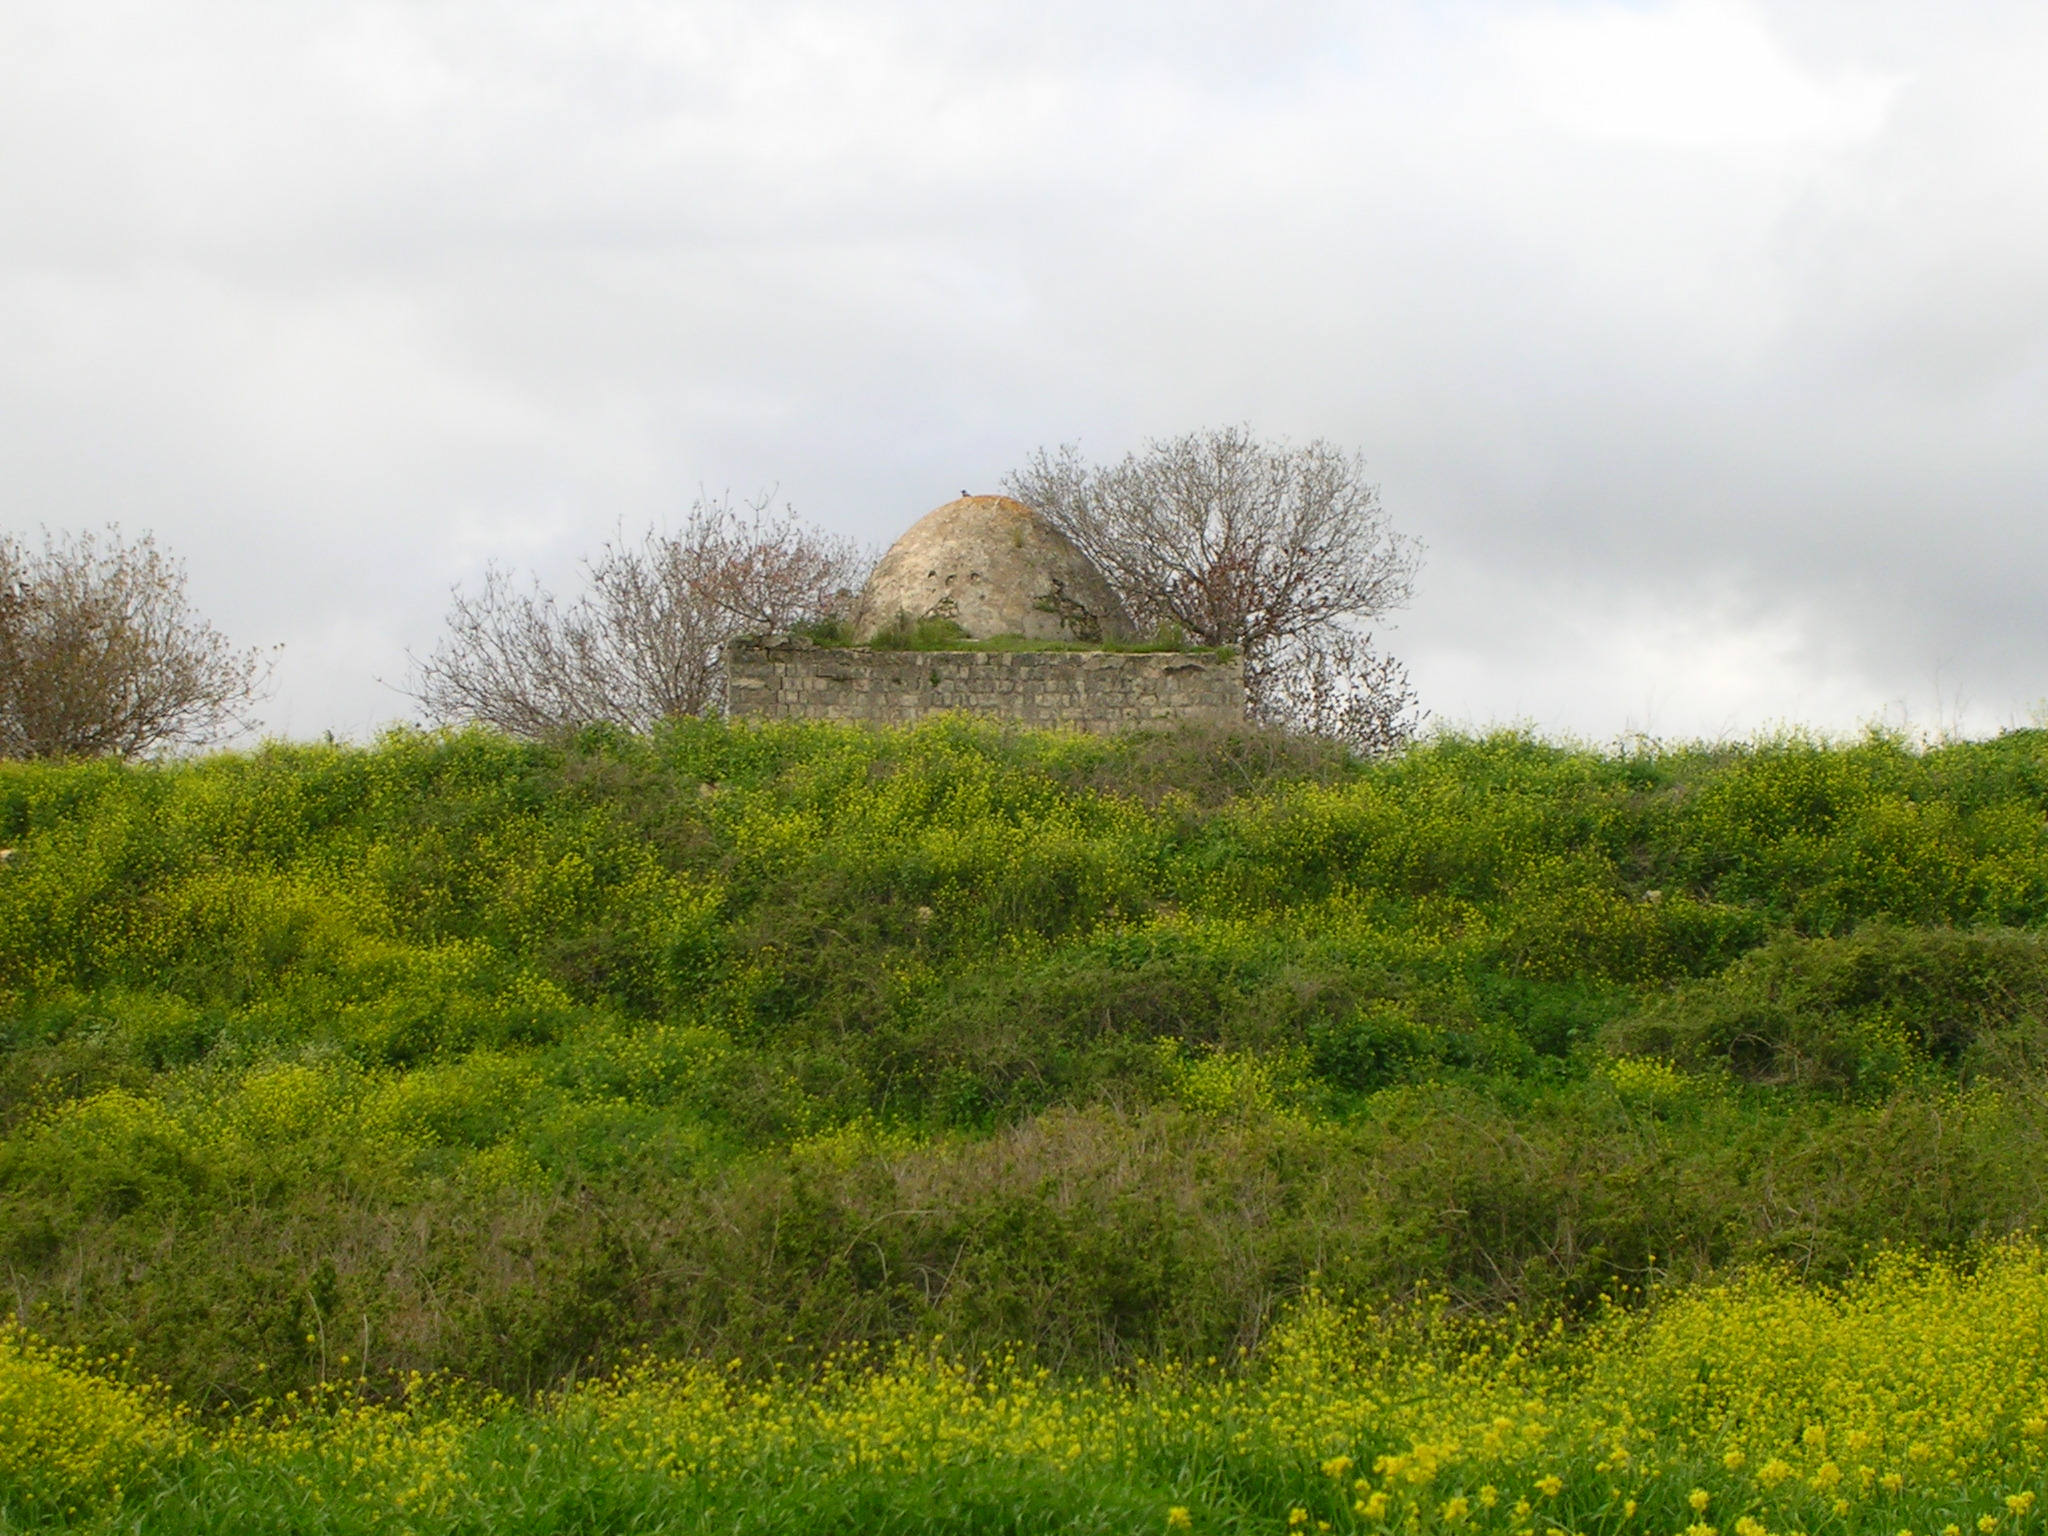 Tarbikha - تربيخا : The mosque from Tarbikha